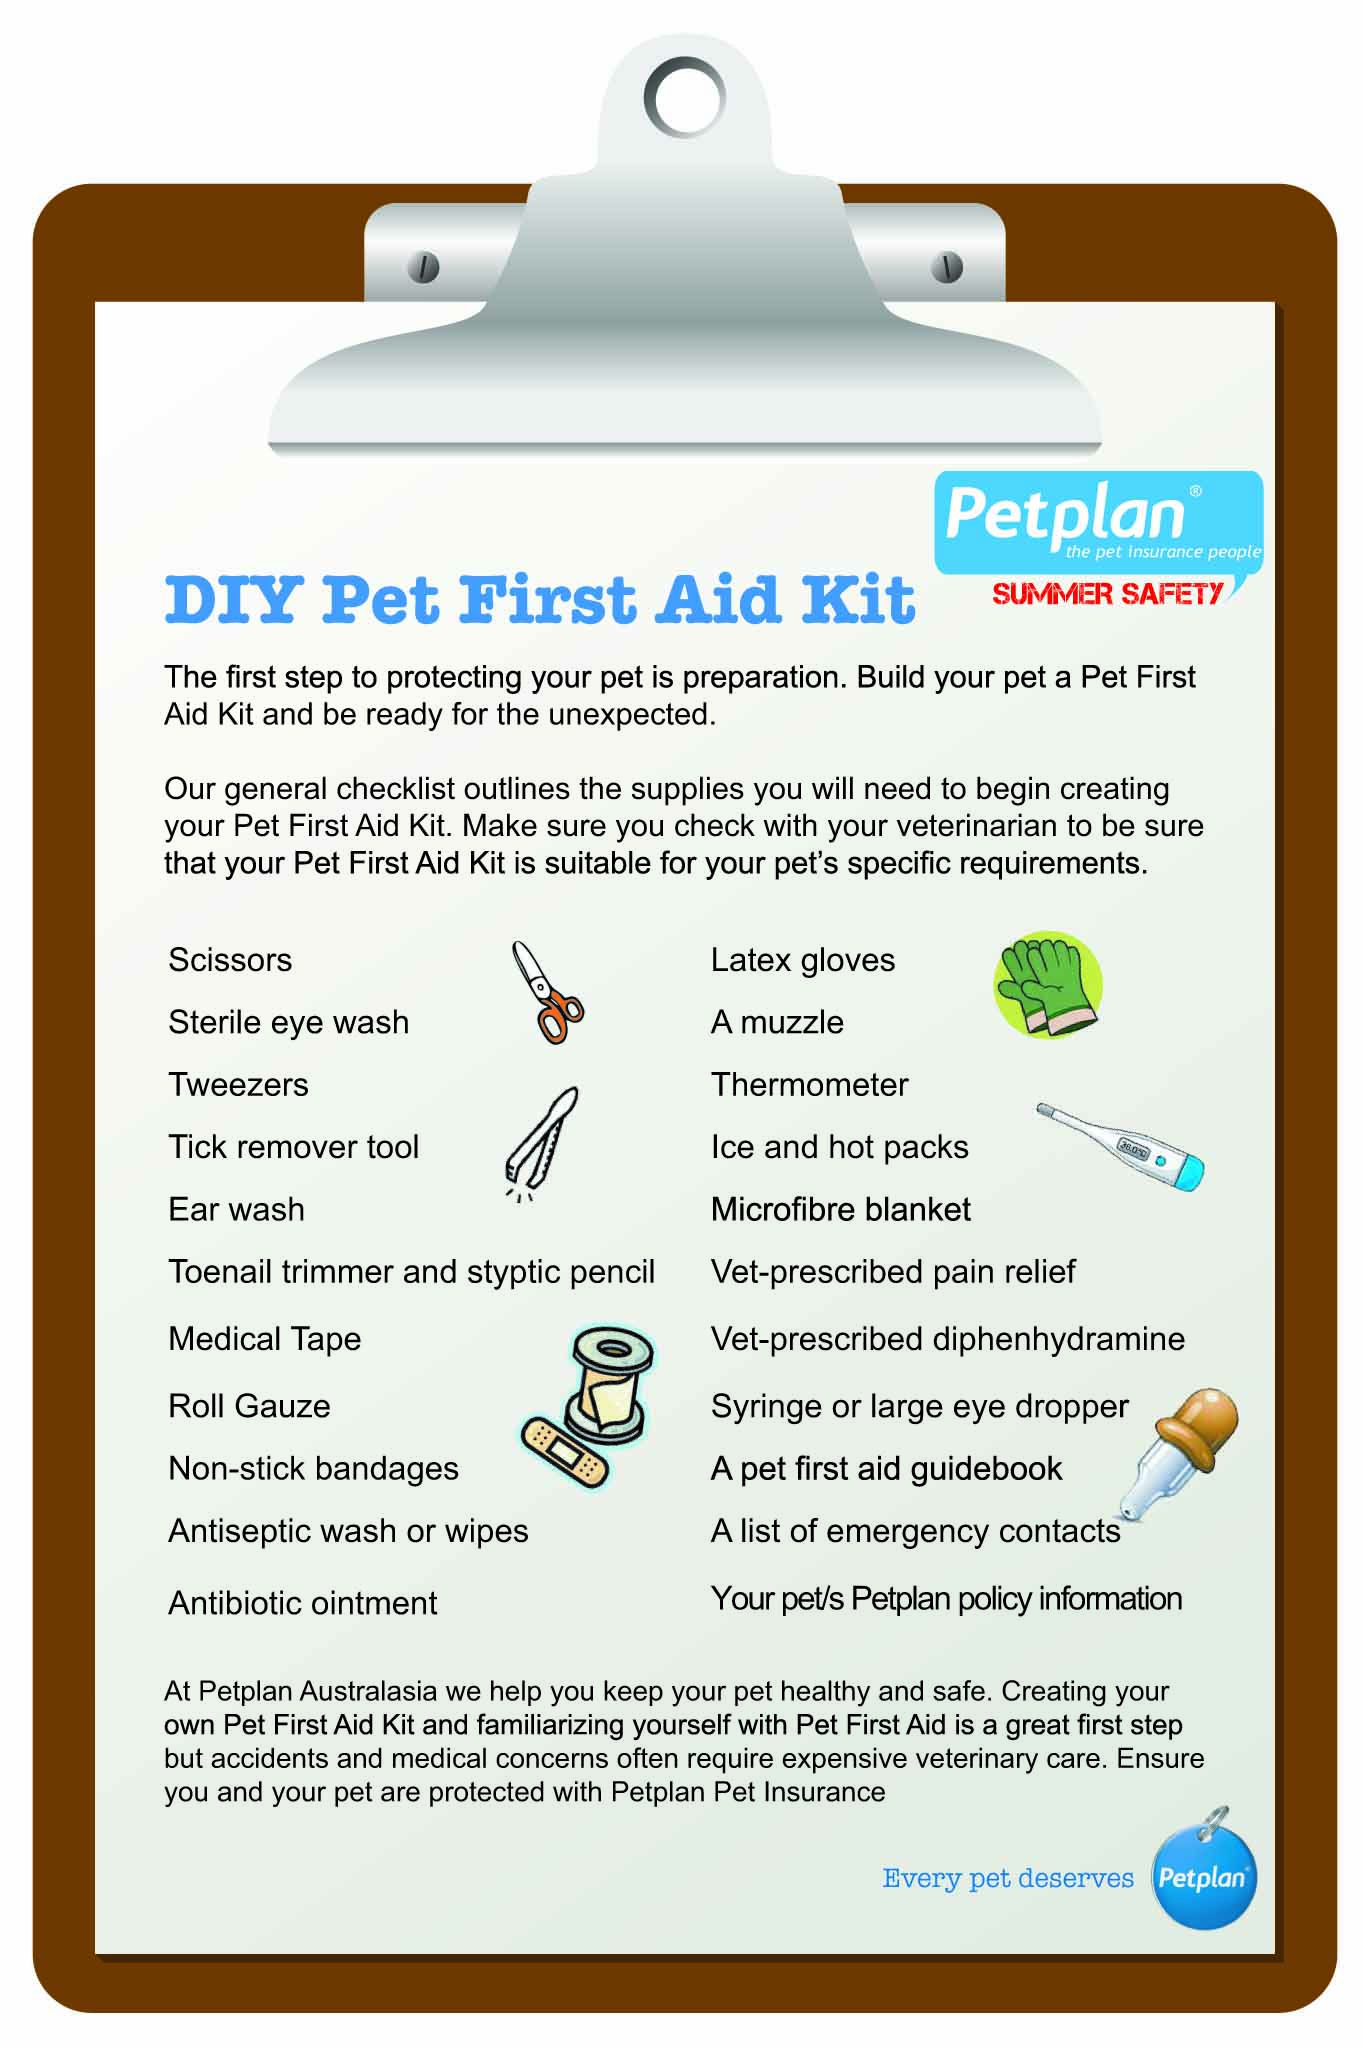 summer safety diy pet first aid kit-01